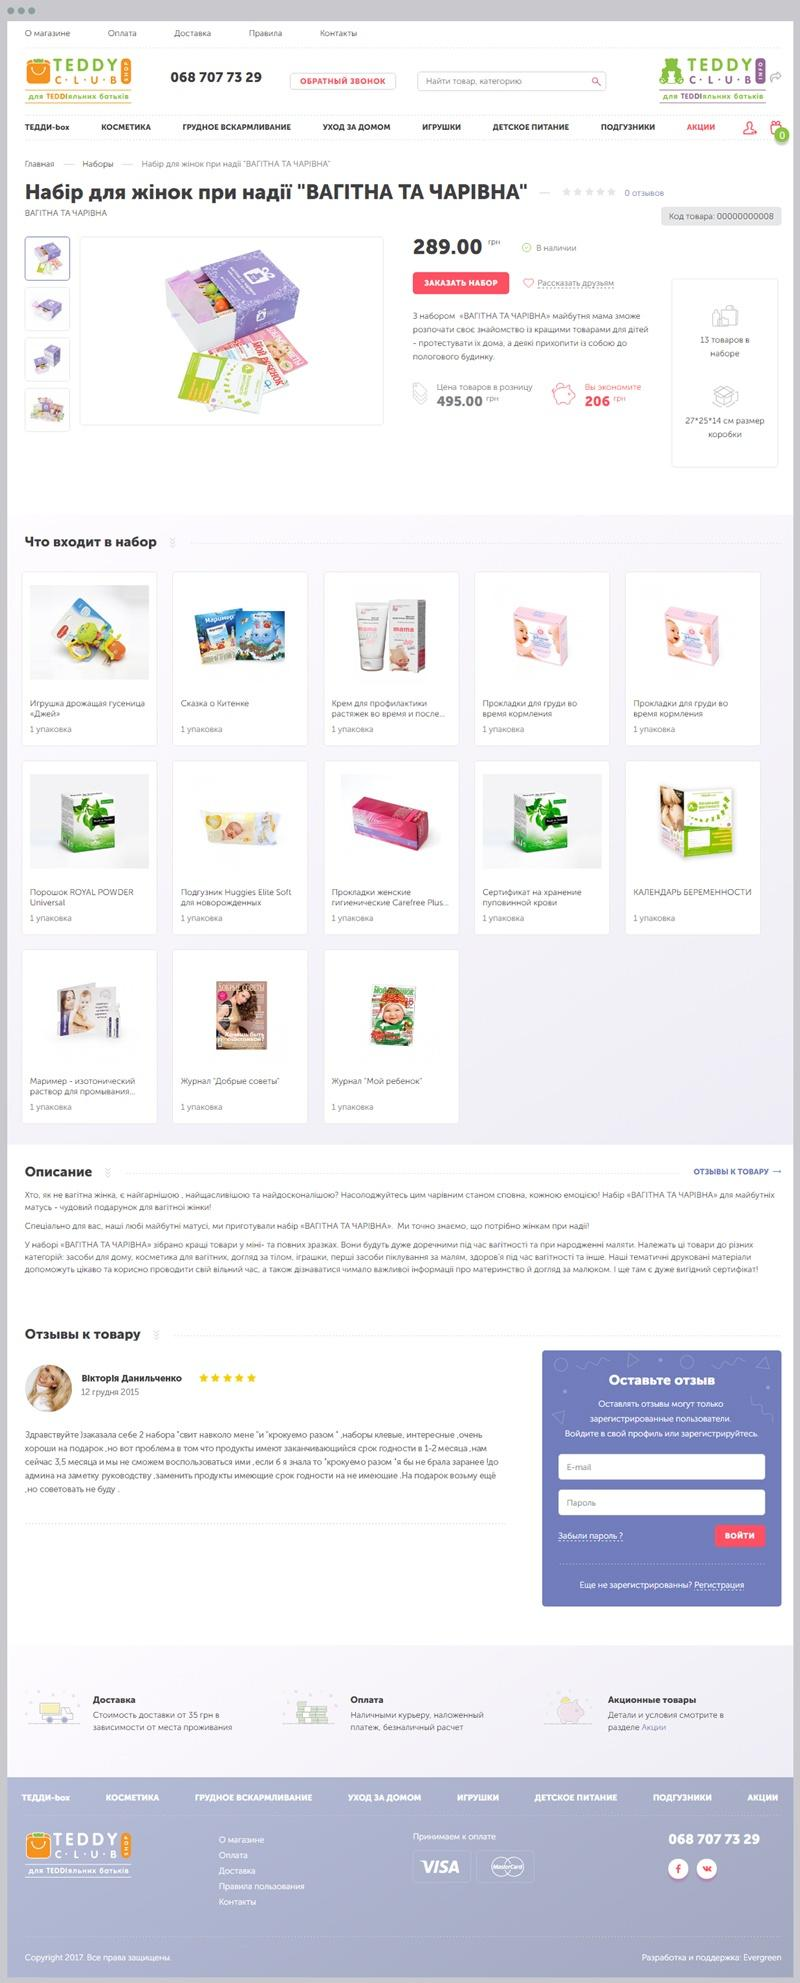 Online store for young parents | Evergreen projects 7